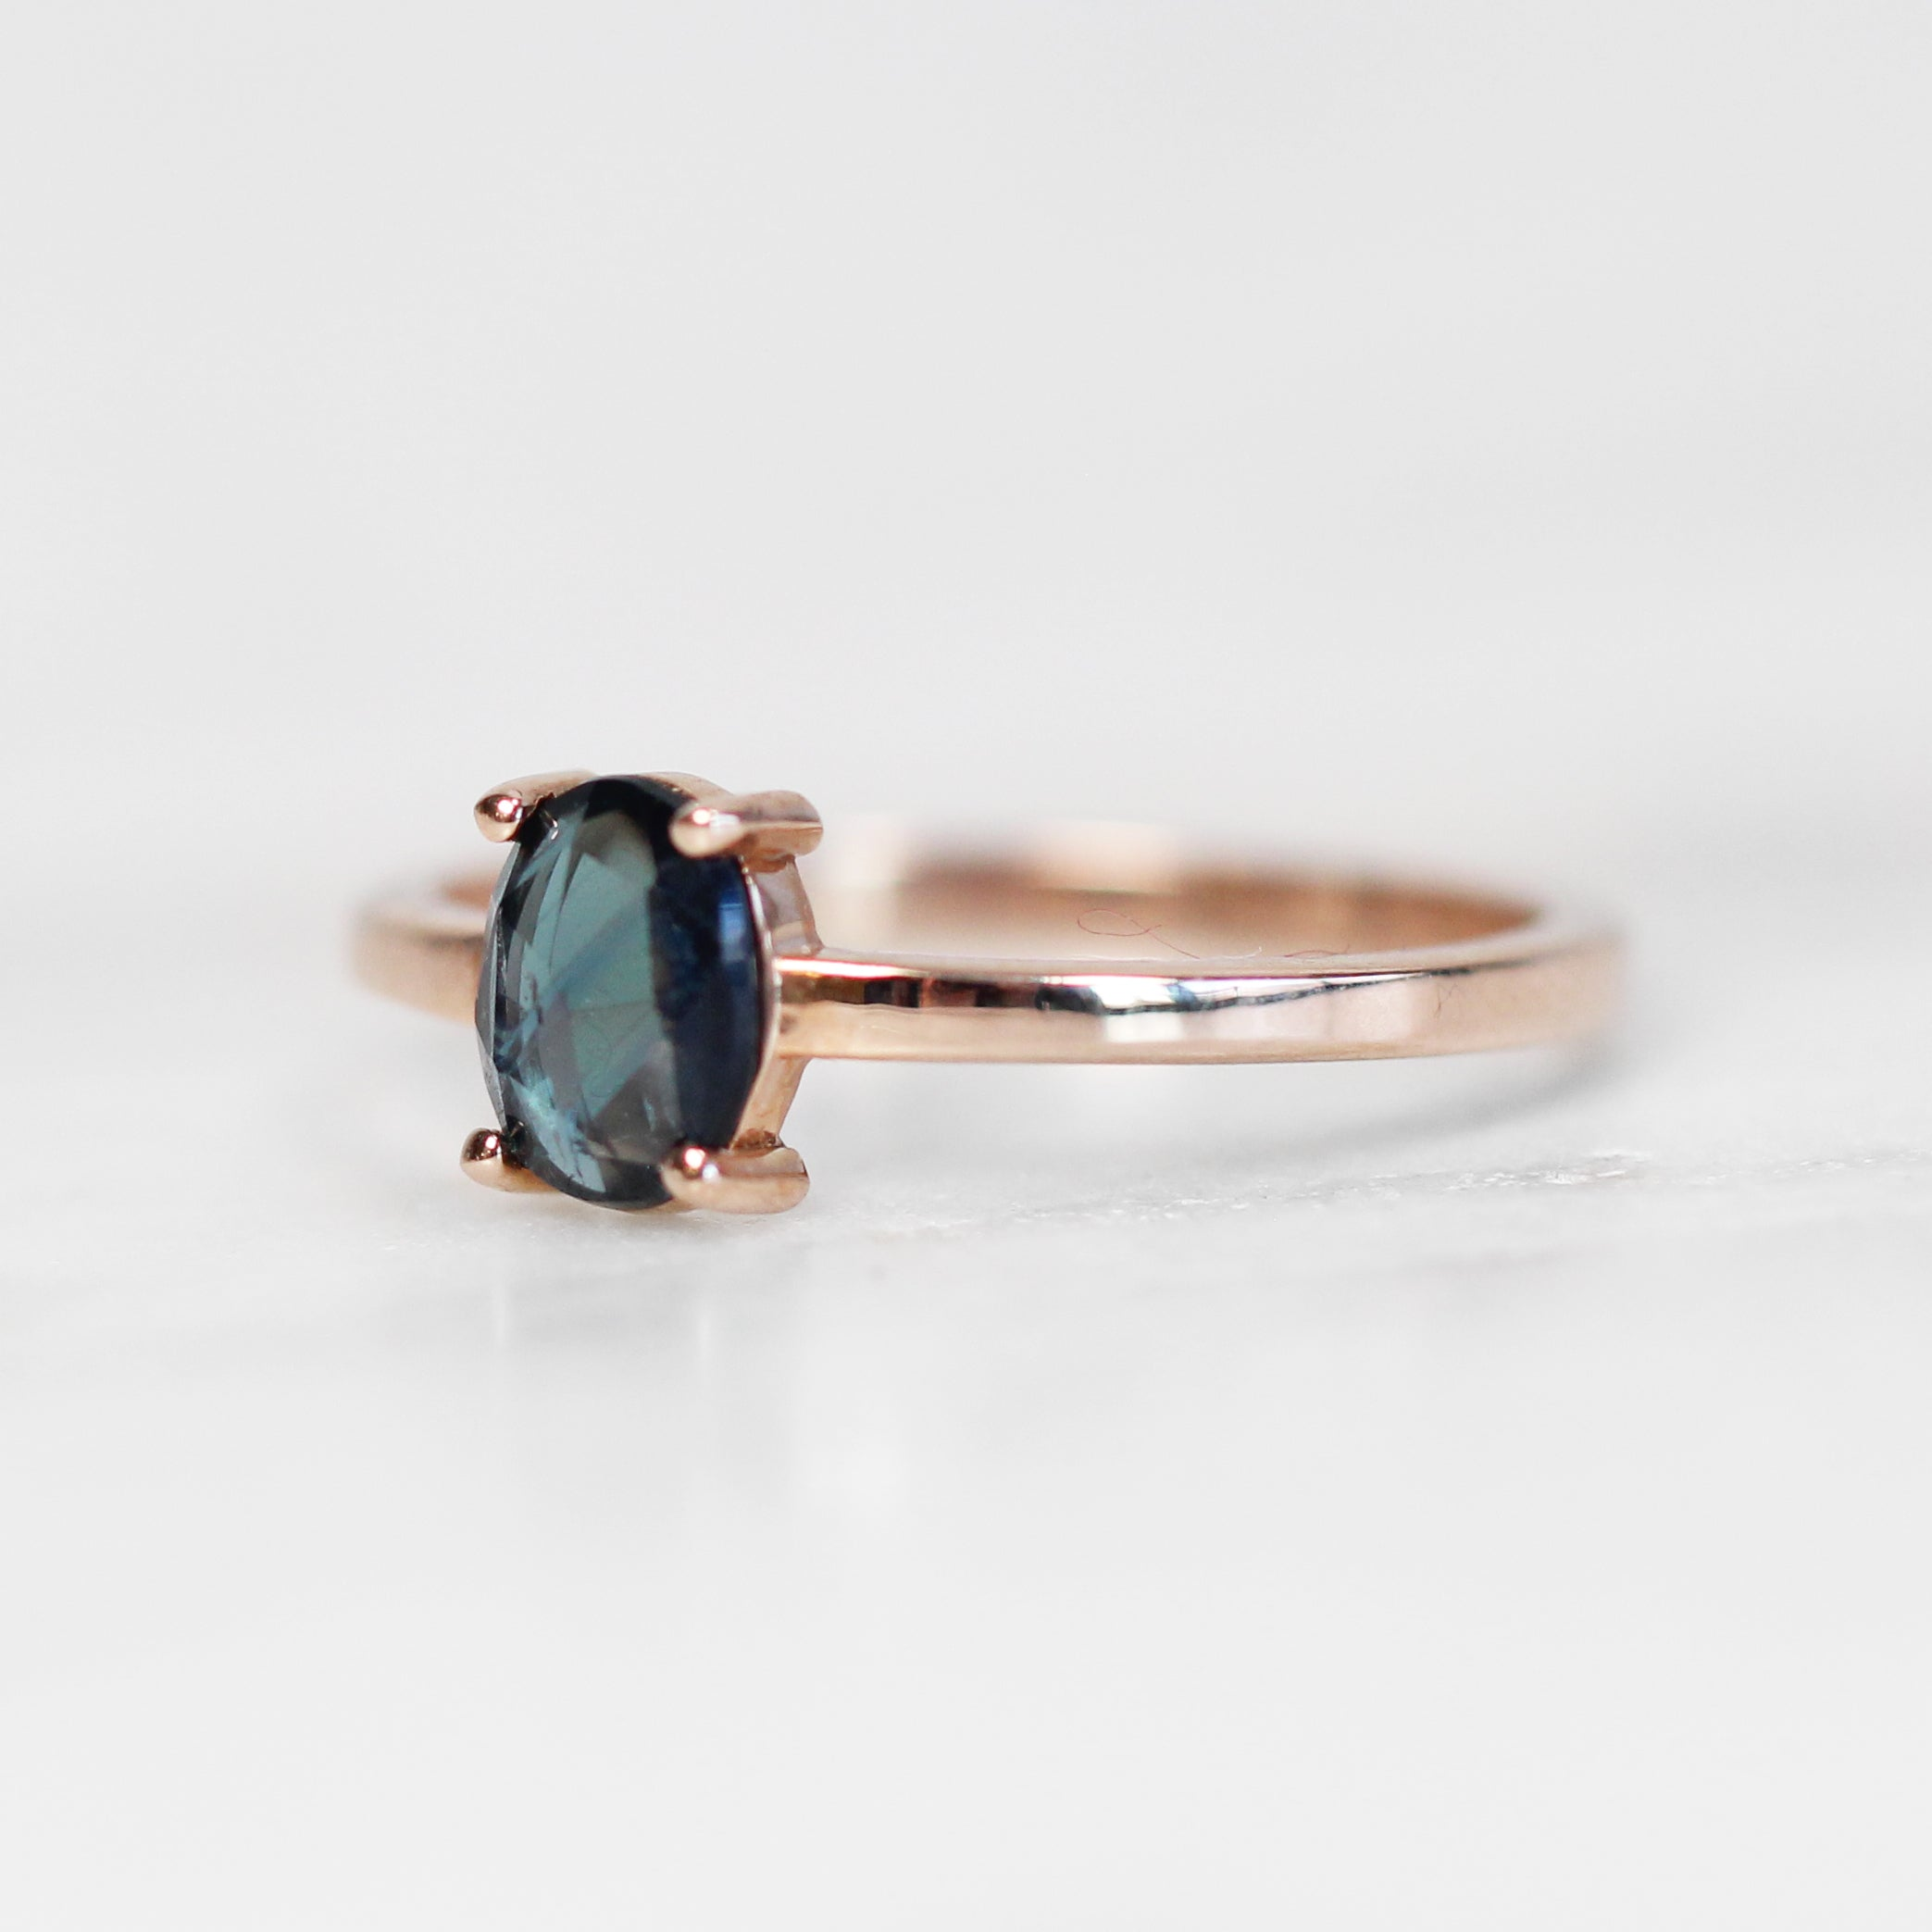 Carly Ring with a Royal Blue Sapphire in 10k Rose Gold - Ready to Size and Ship - Celestial Diamonds ® by Midwinter Co.